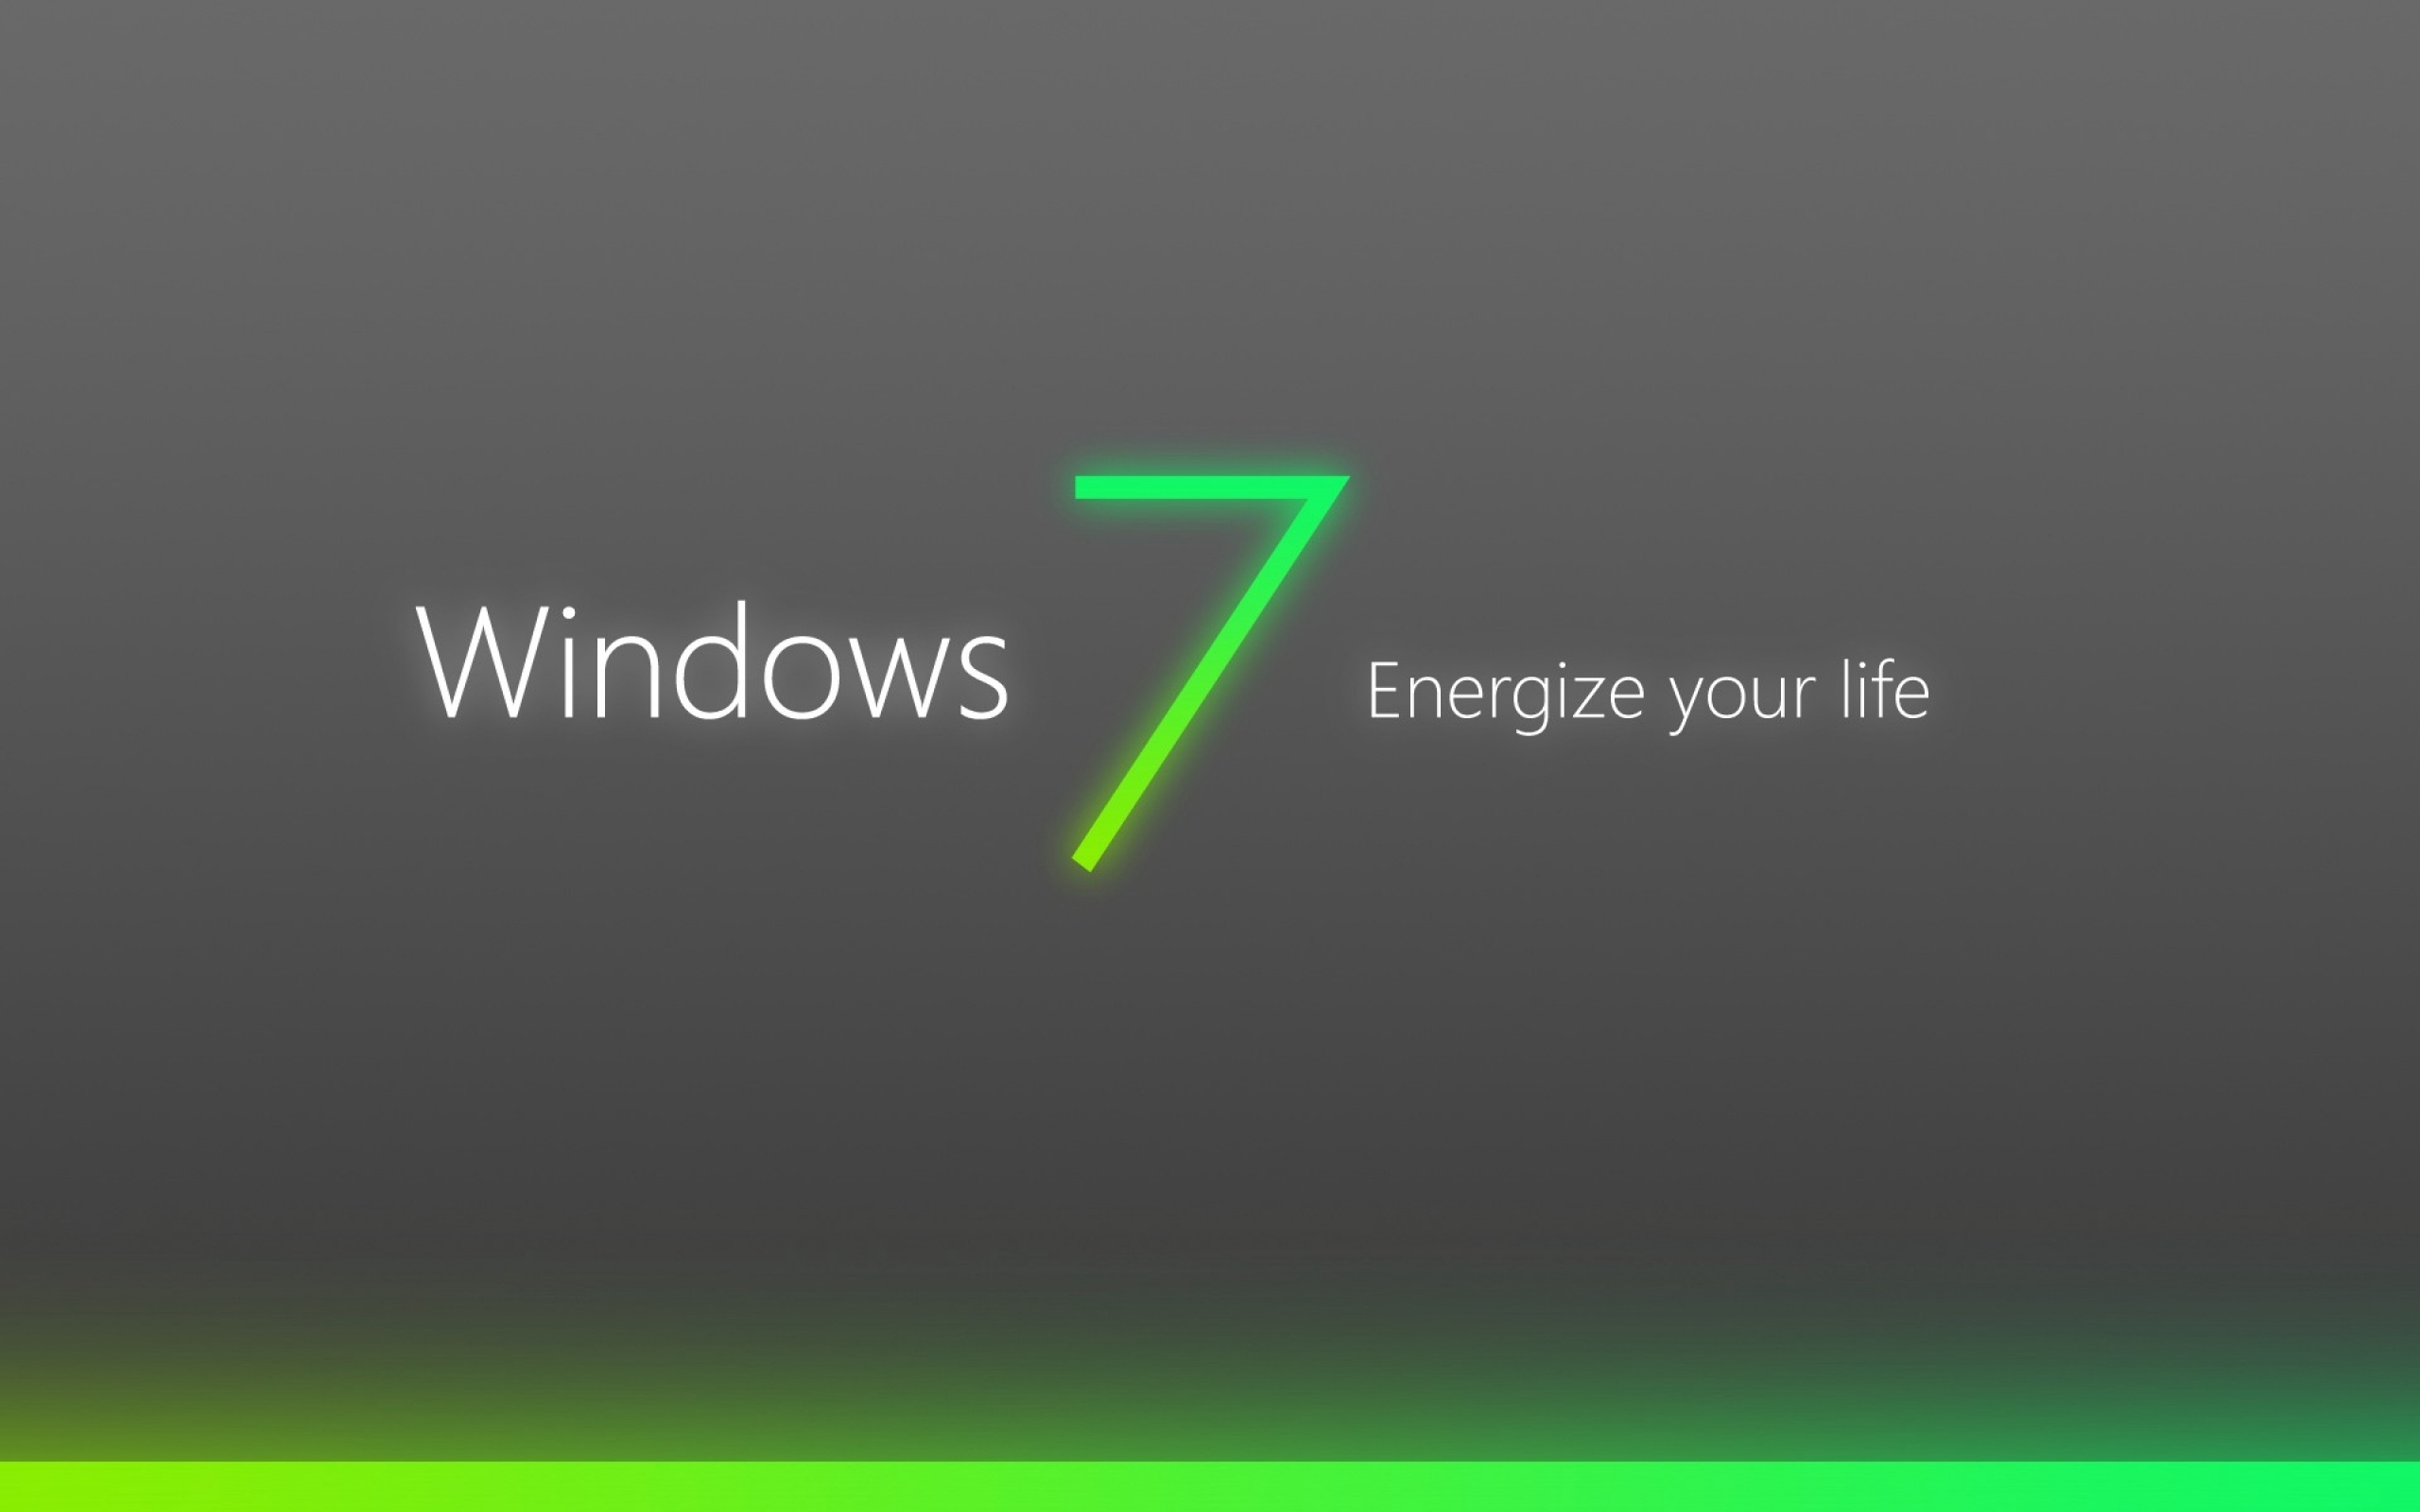 Windows 7 Wallpapers Backgrounds Hd 15